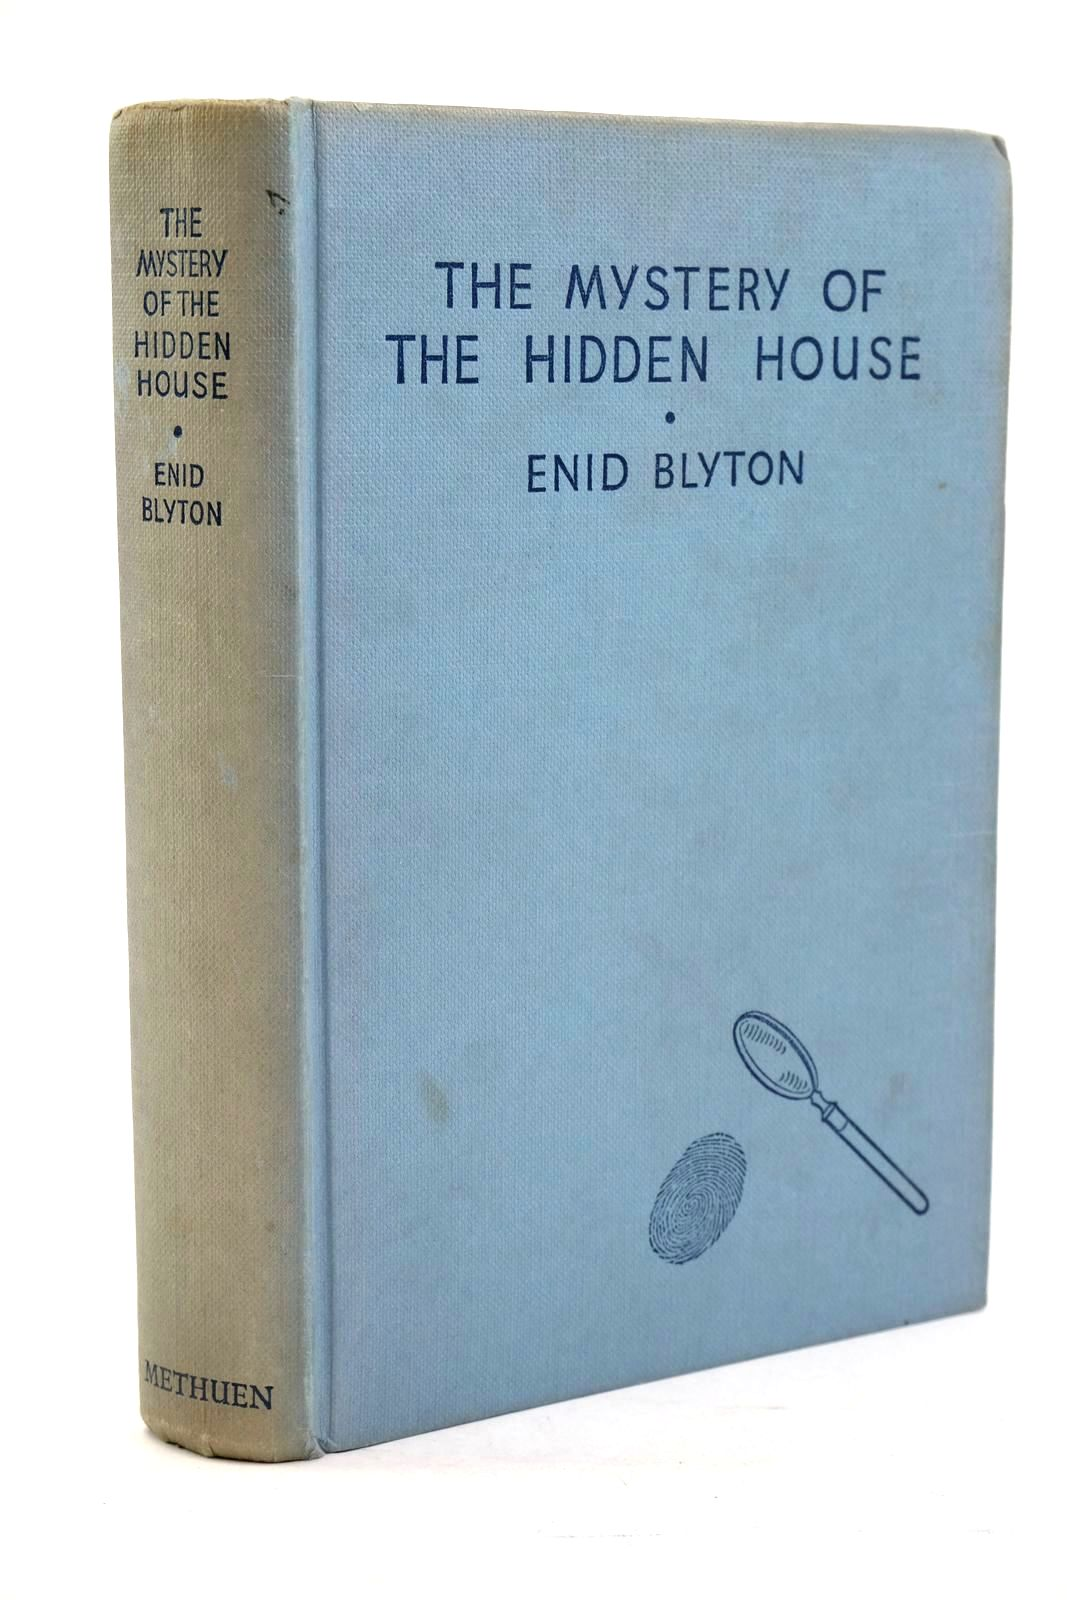 Photo of THE MYSTERY OF THE HIDDEN HOUSE written by Blyton, Enid illustrated by Abbey, J. published by Methuen & Co. Ltd. (STOCK CODE: 1320747)  for sale by Stella & Rose's Books